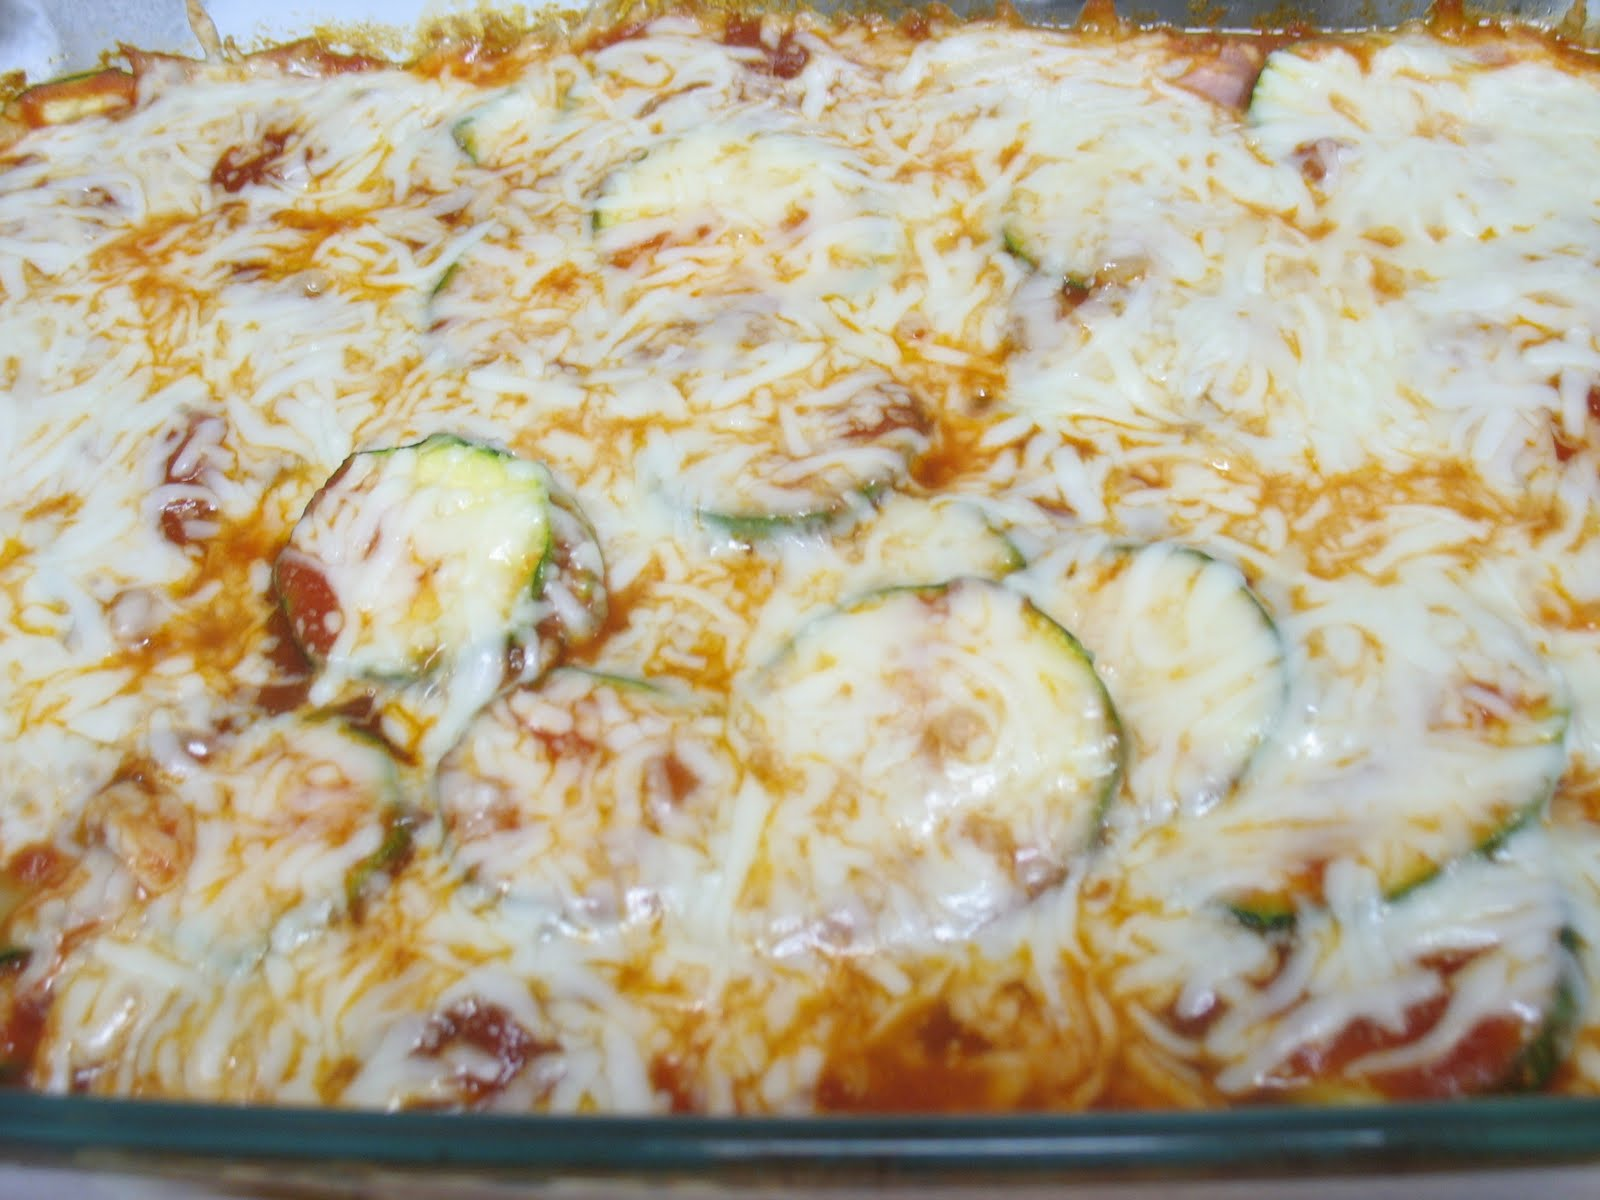 Lola's Homemade Cooking: Zucchini Parmesan